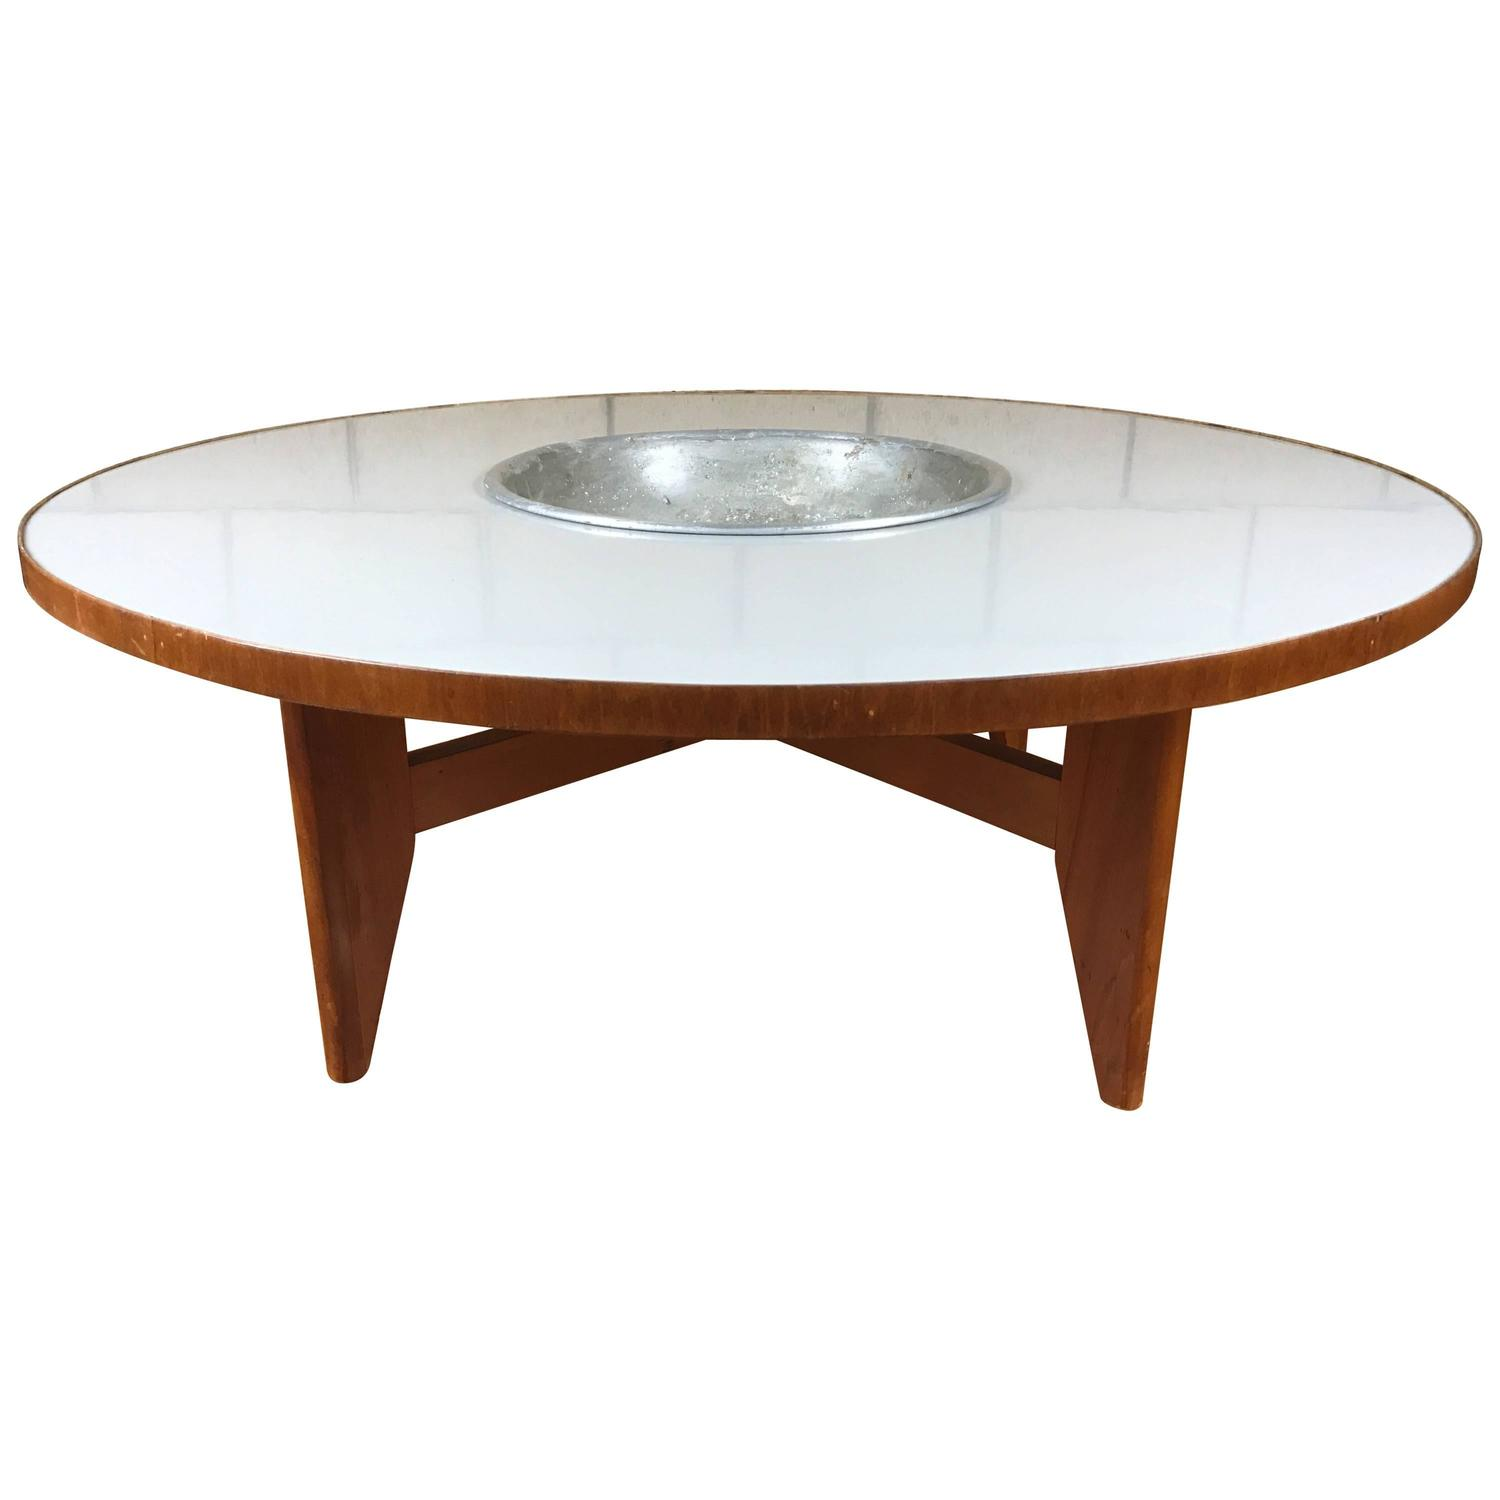 Rare Early Transitional George Nelson Round Coffee Table with